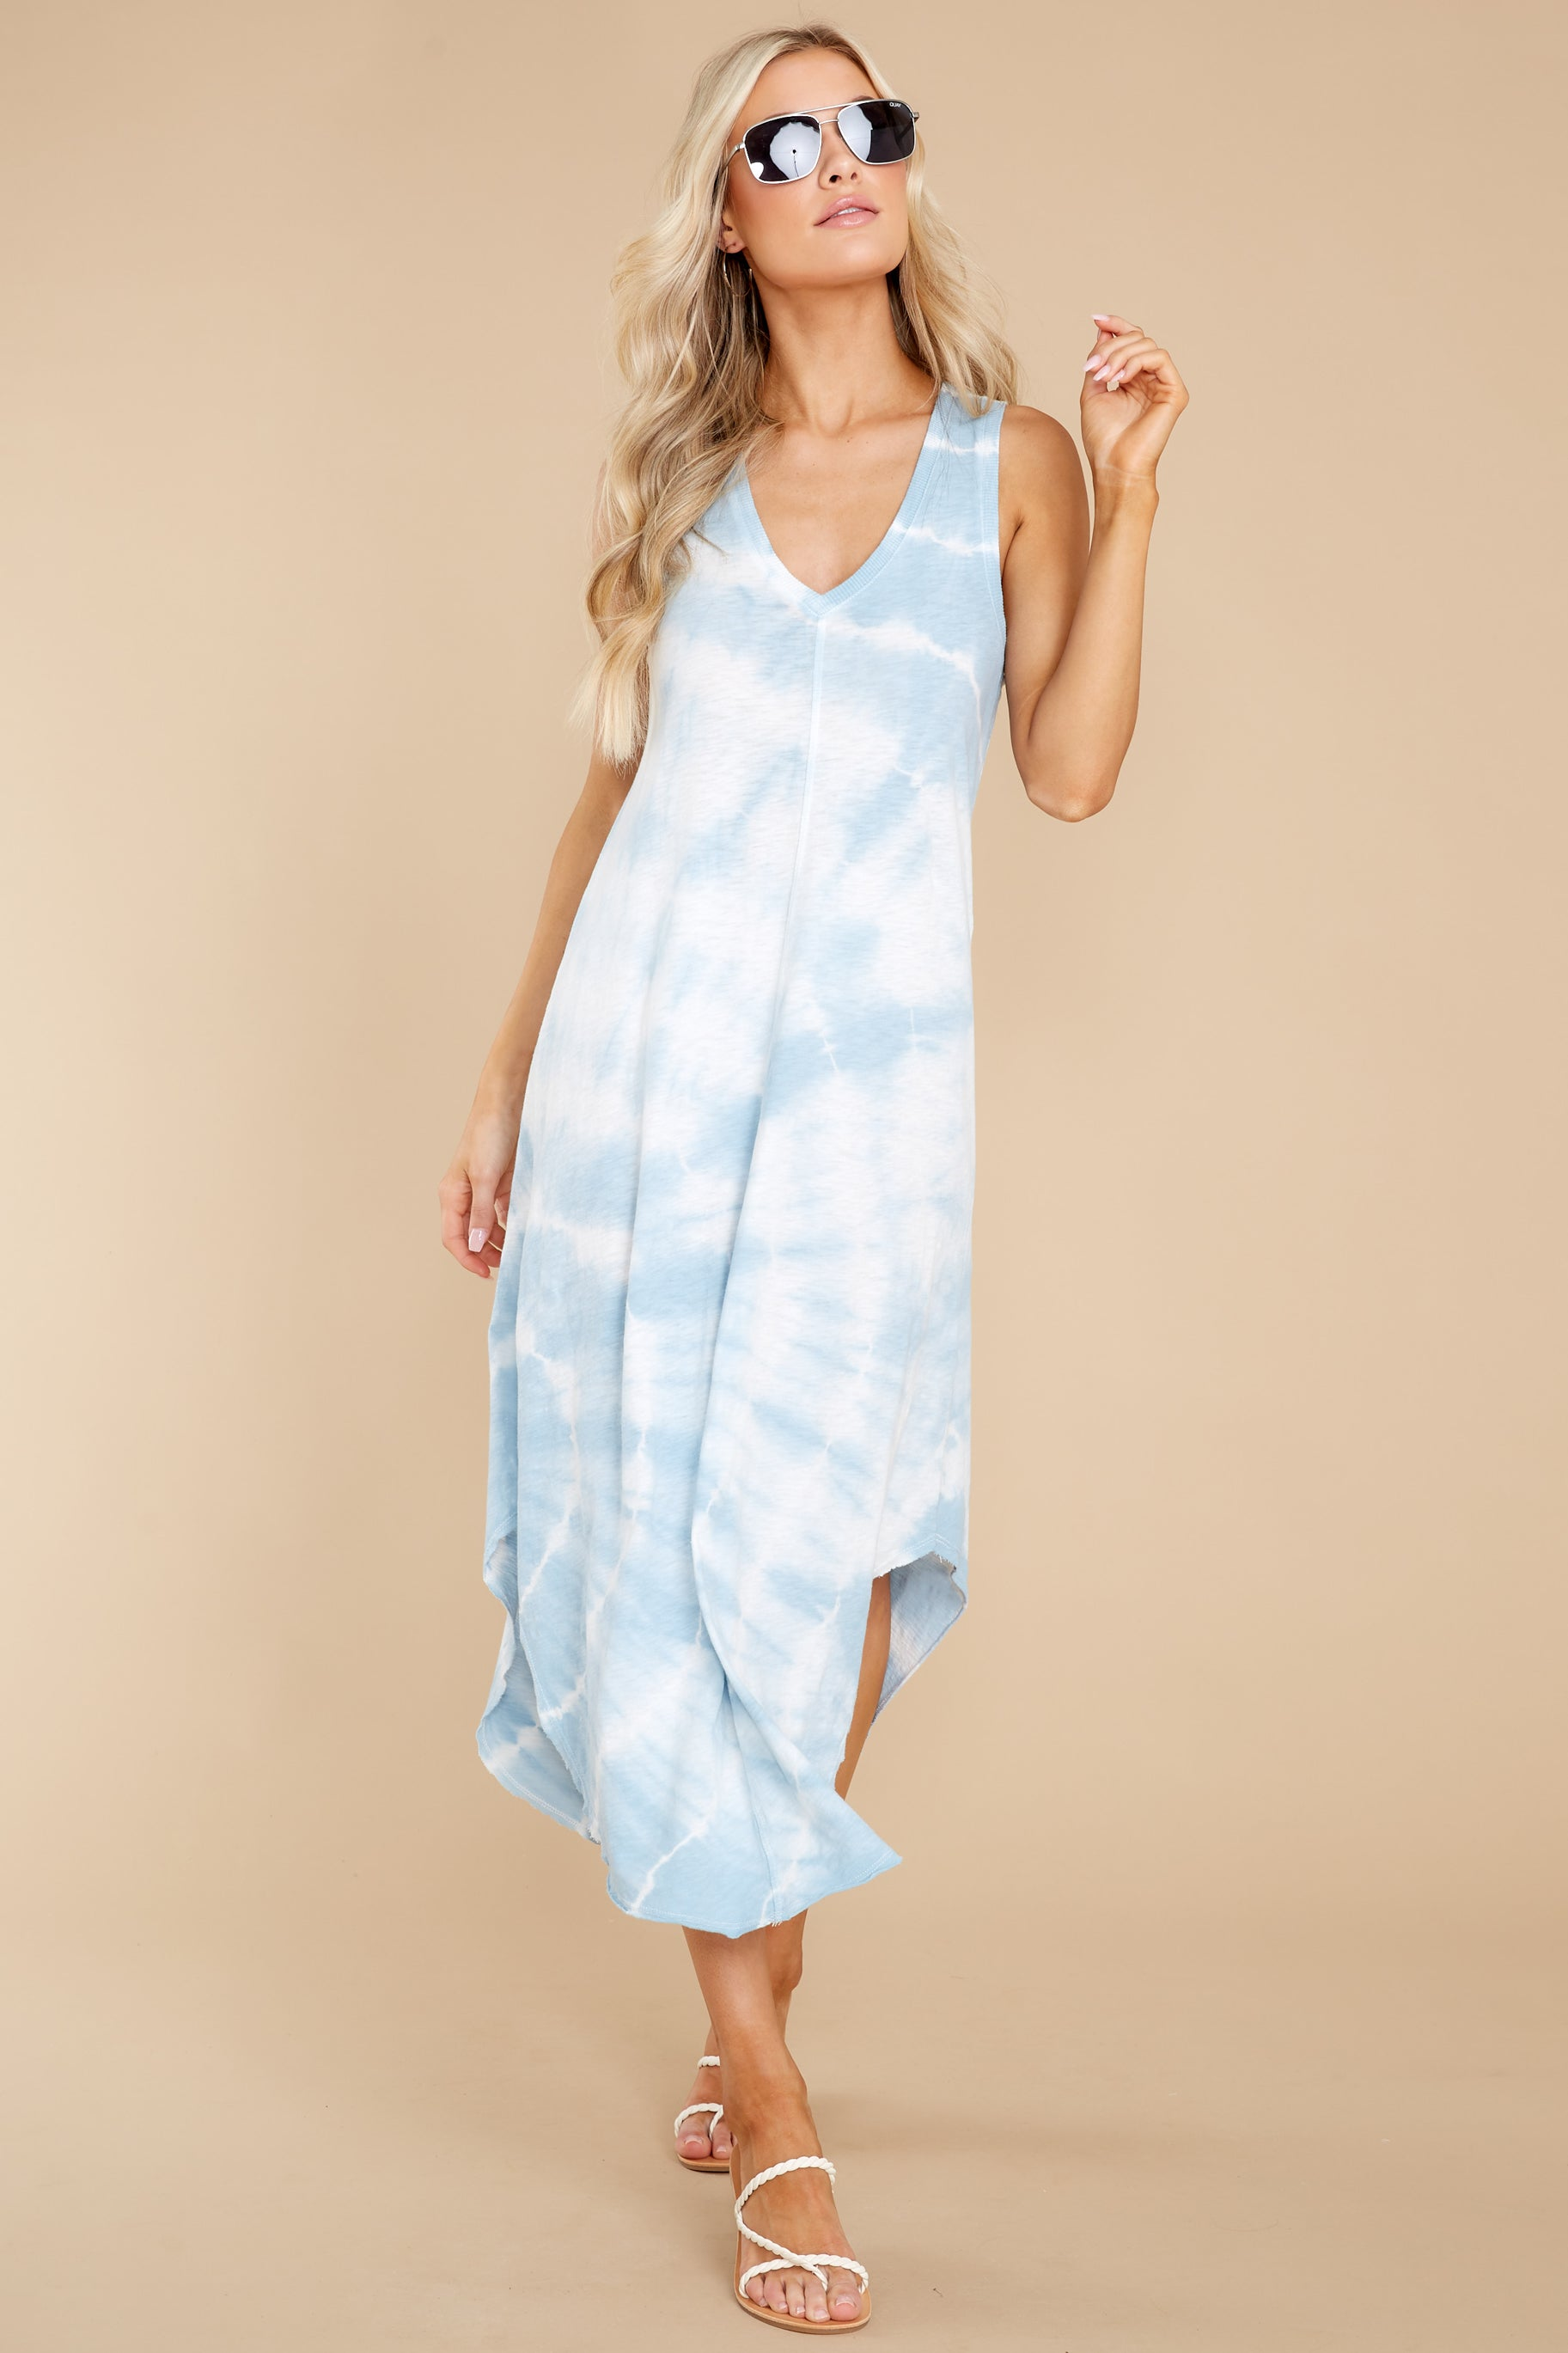 1 Reverie Blue Agave Spiral Tie Dye Dress at reddress.com